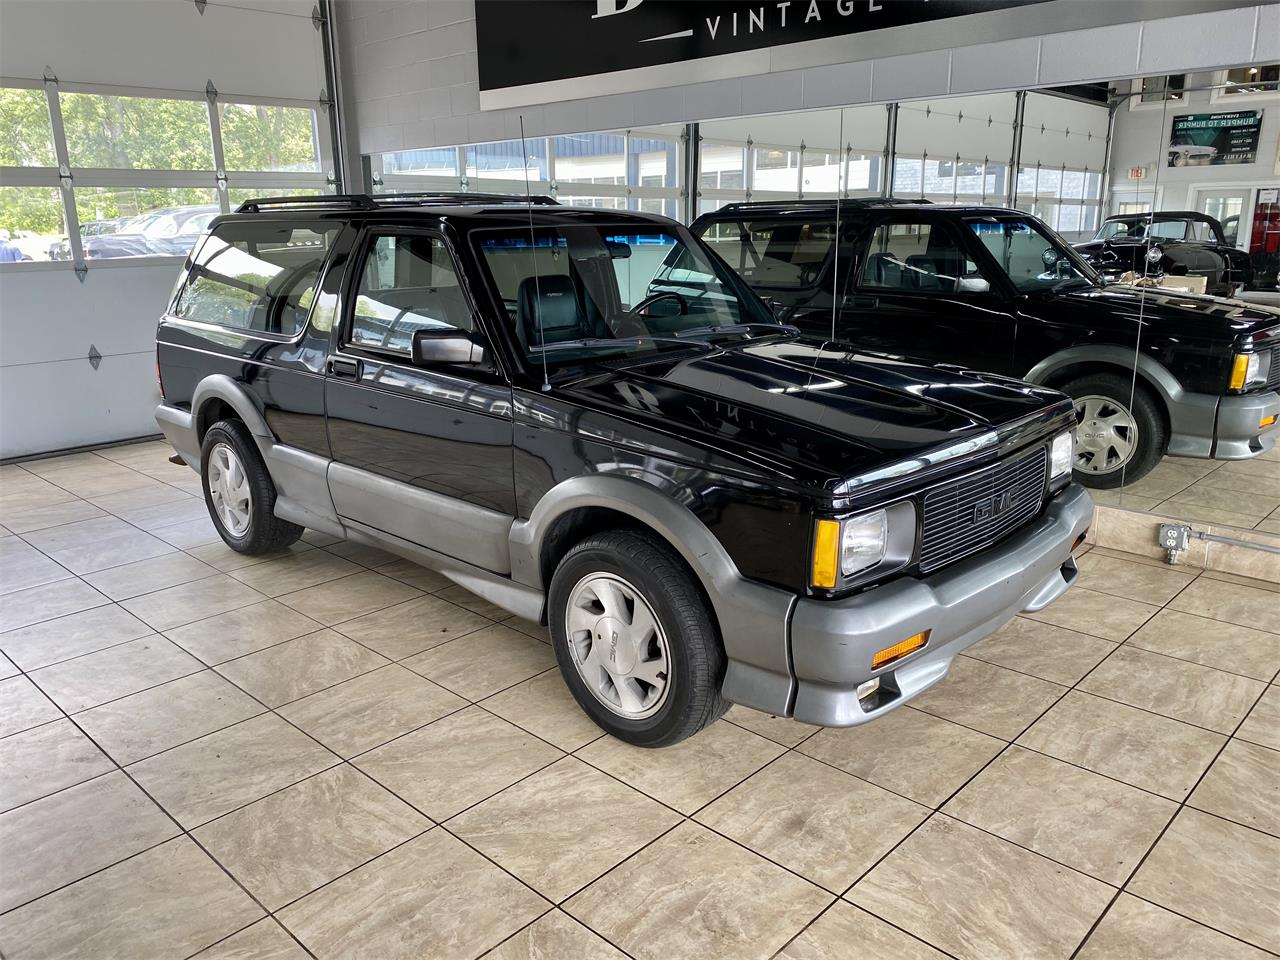 for sale 1992 gmc typhoon in saint charles, illinois cars - saint charles, il at geebo